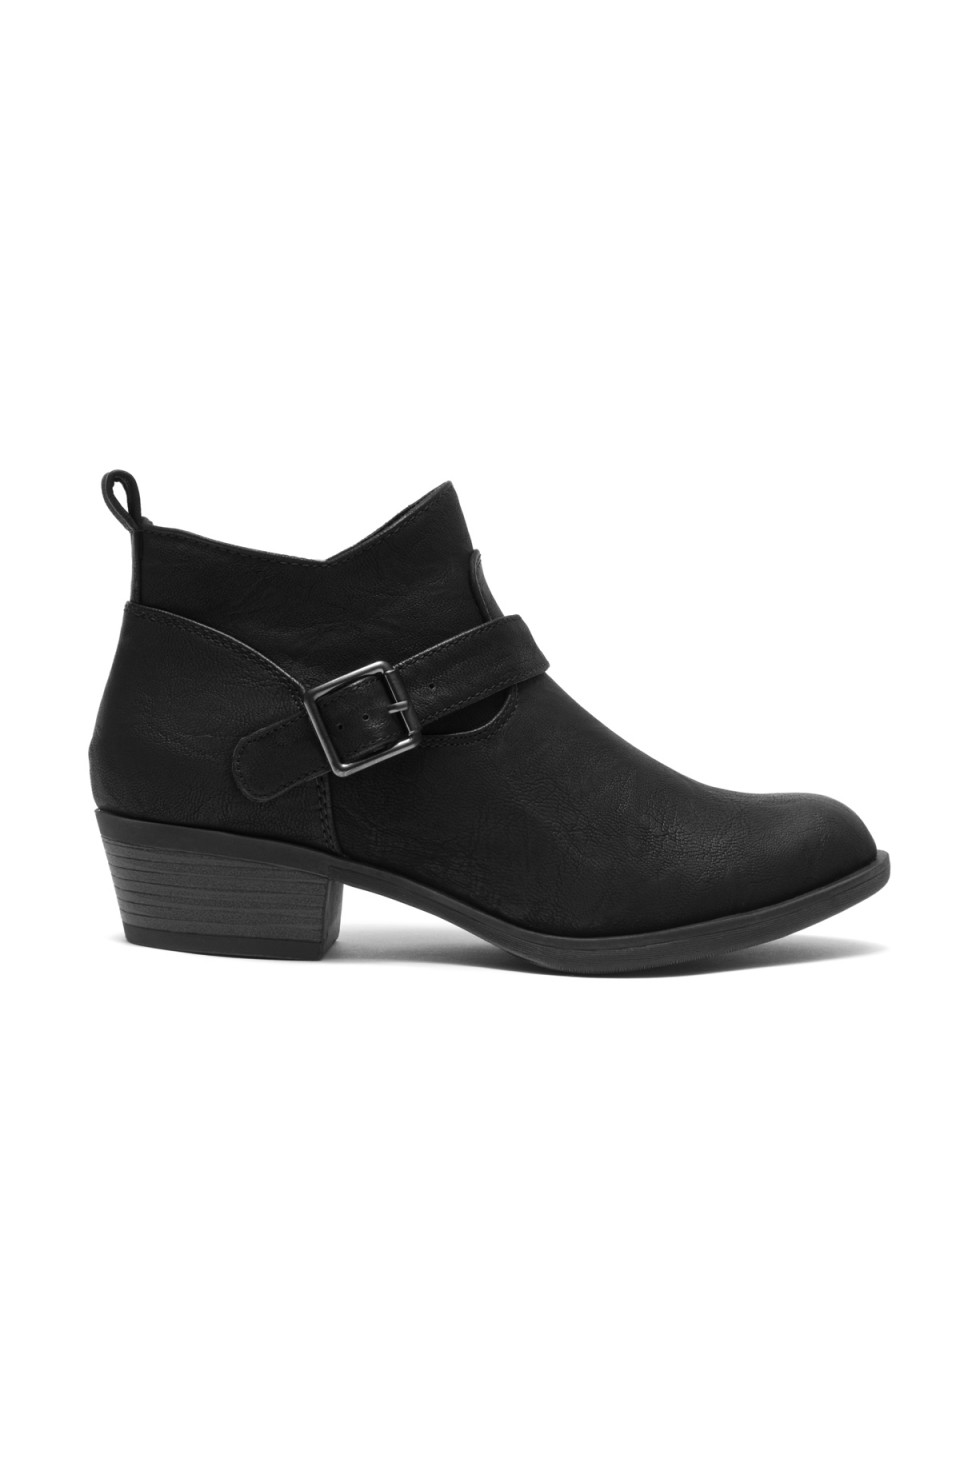 Women's Black Raavver Basel Boot Fashionable Stacked Heels, Buckle strapped. Western Ankle Boot Cowgirl Low Heel Closed Toe Casual Bootie, Comfortable Walking Slip on